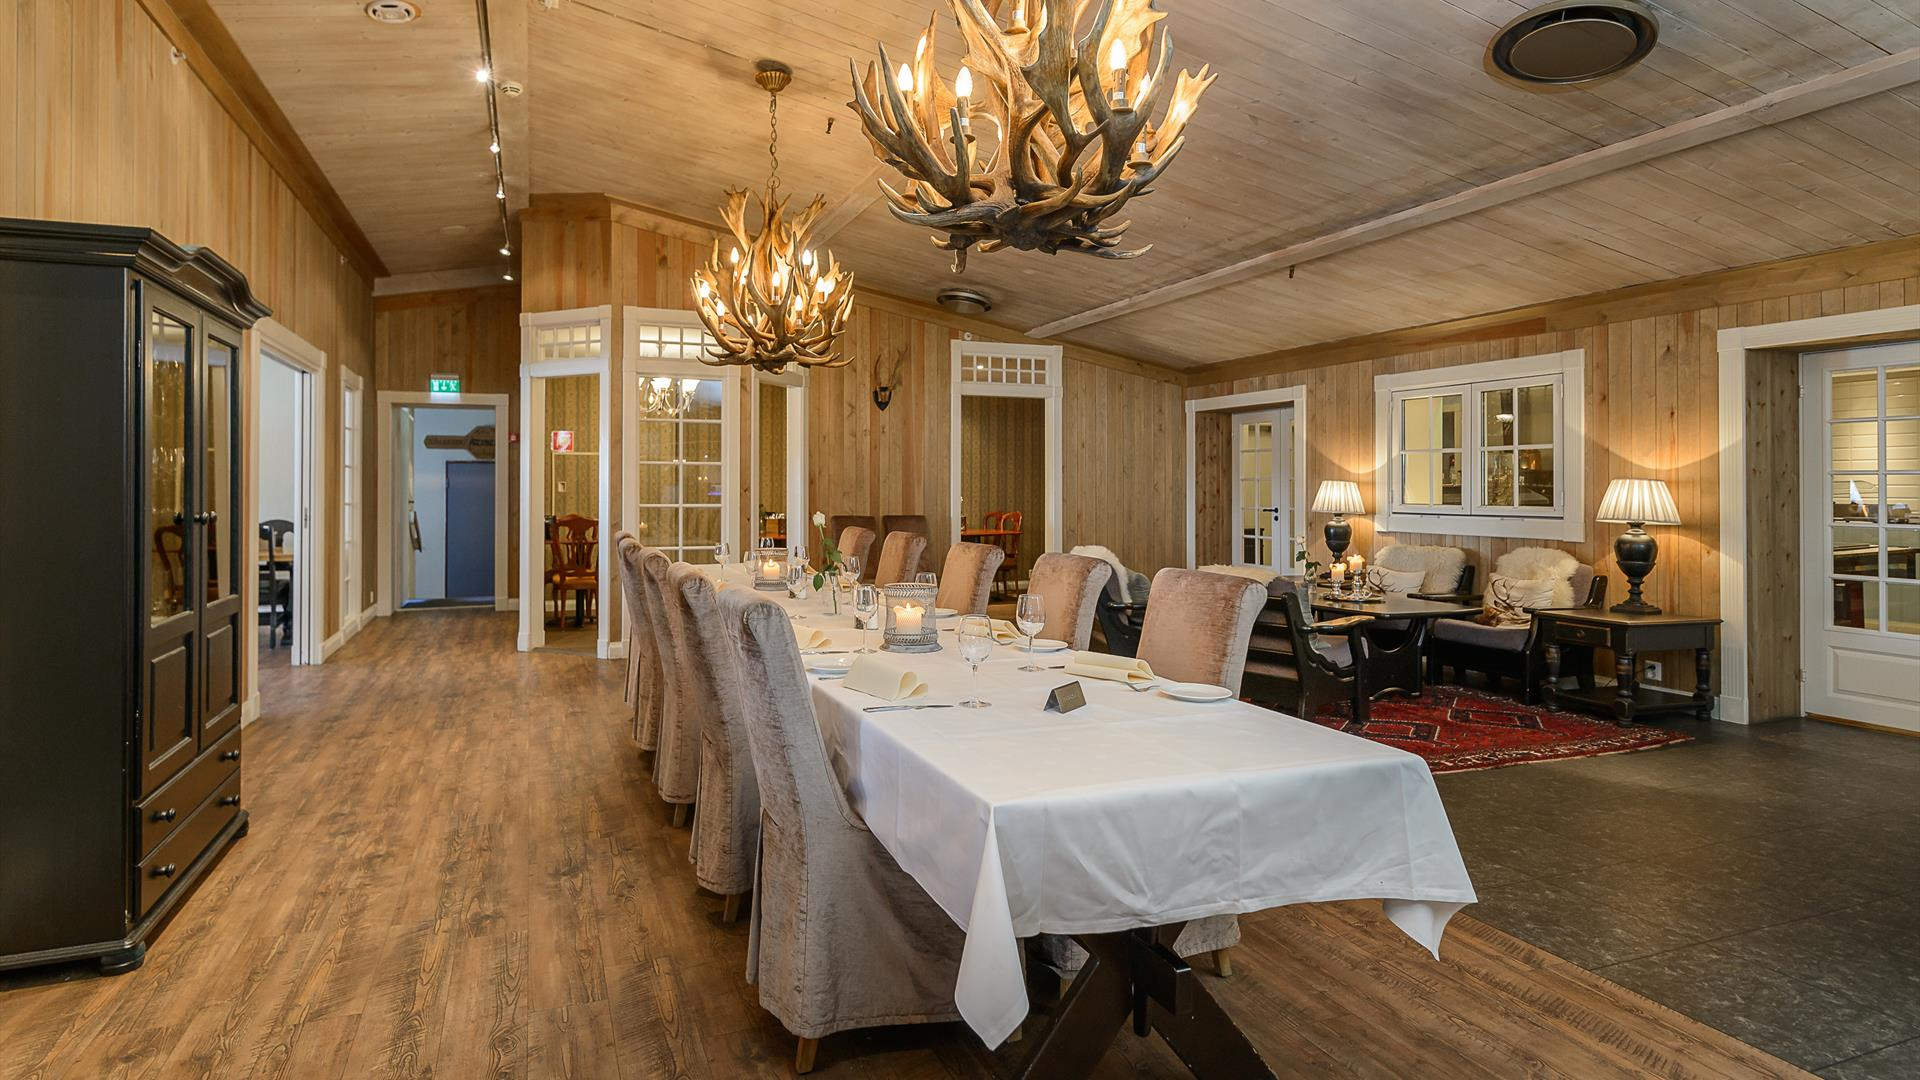 Long dinner table in one of the dining rooms at Hafjell hotel